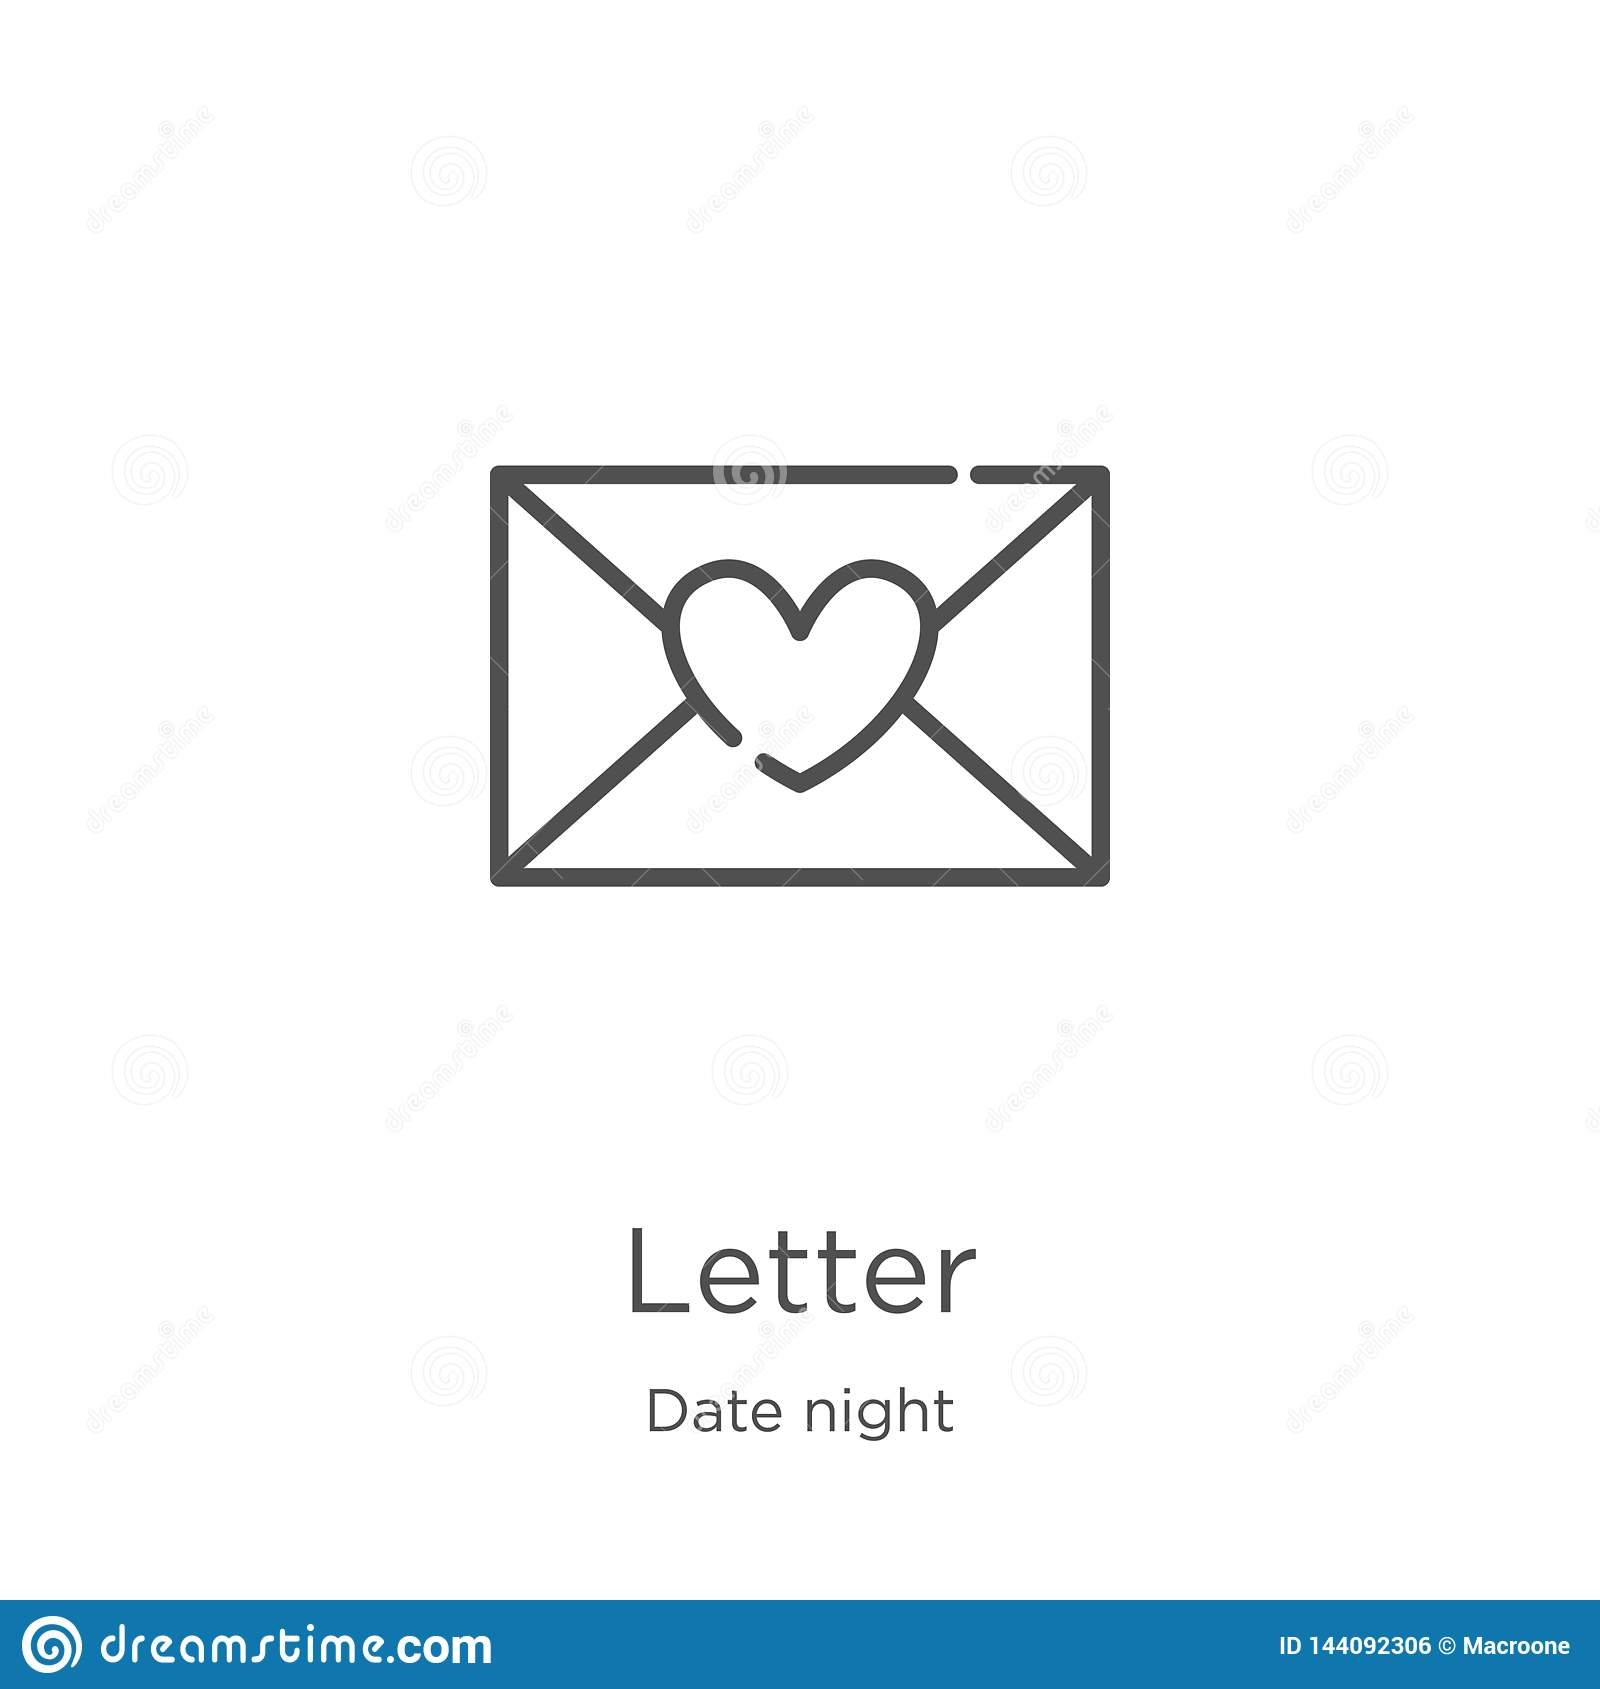 letter icon vector from date night collection. Thin line letter outline icon vector illustration. Outline, thin line letter icon